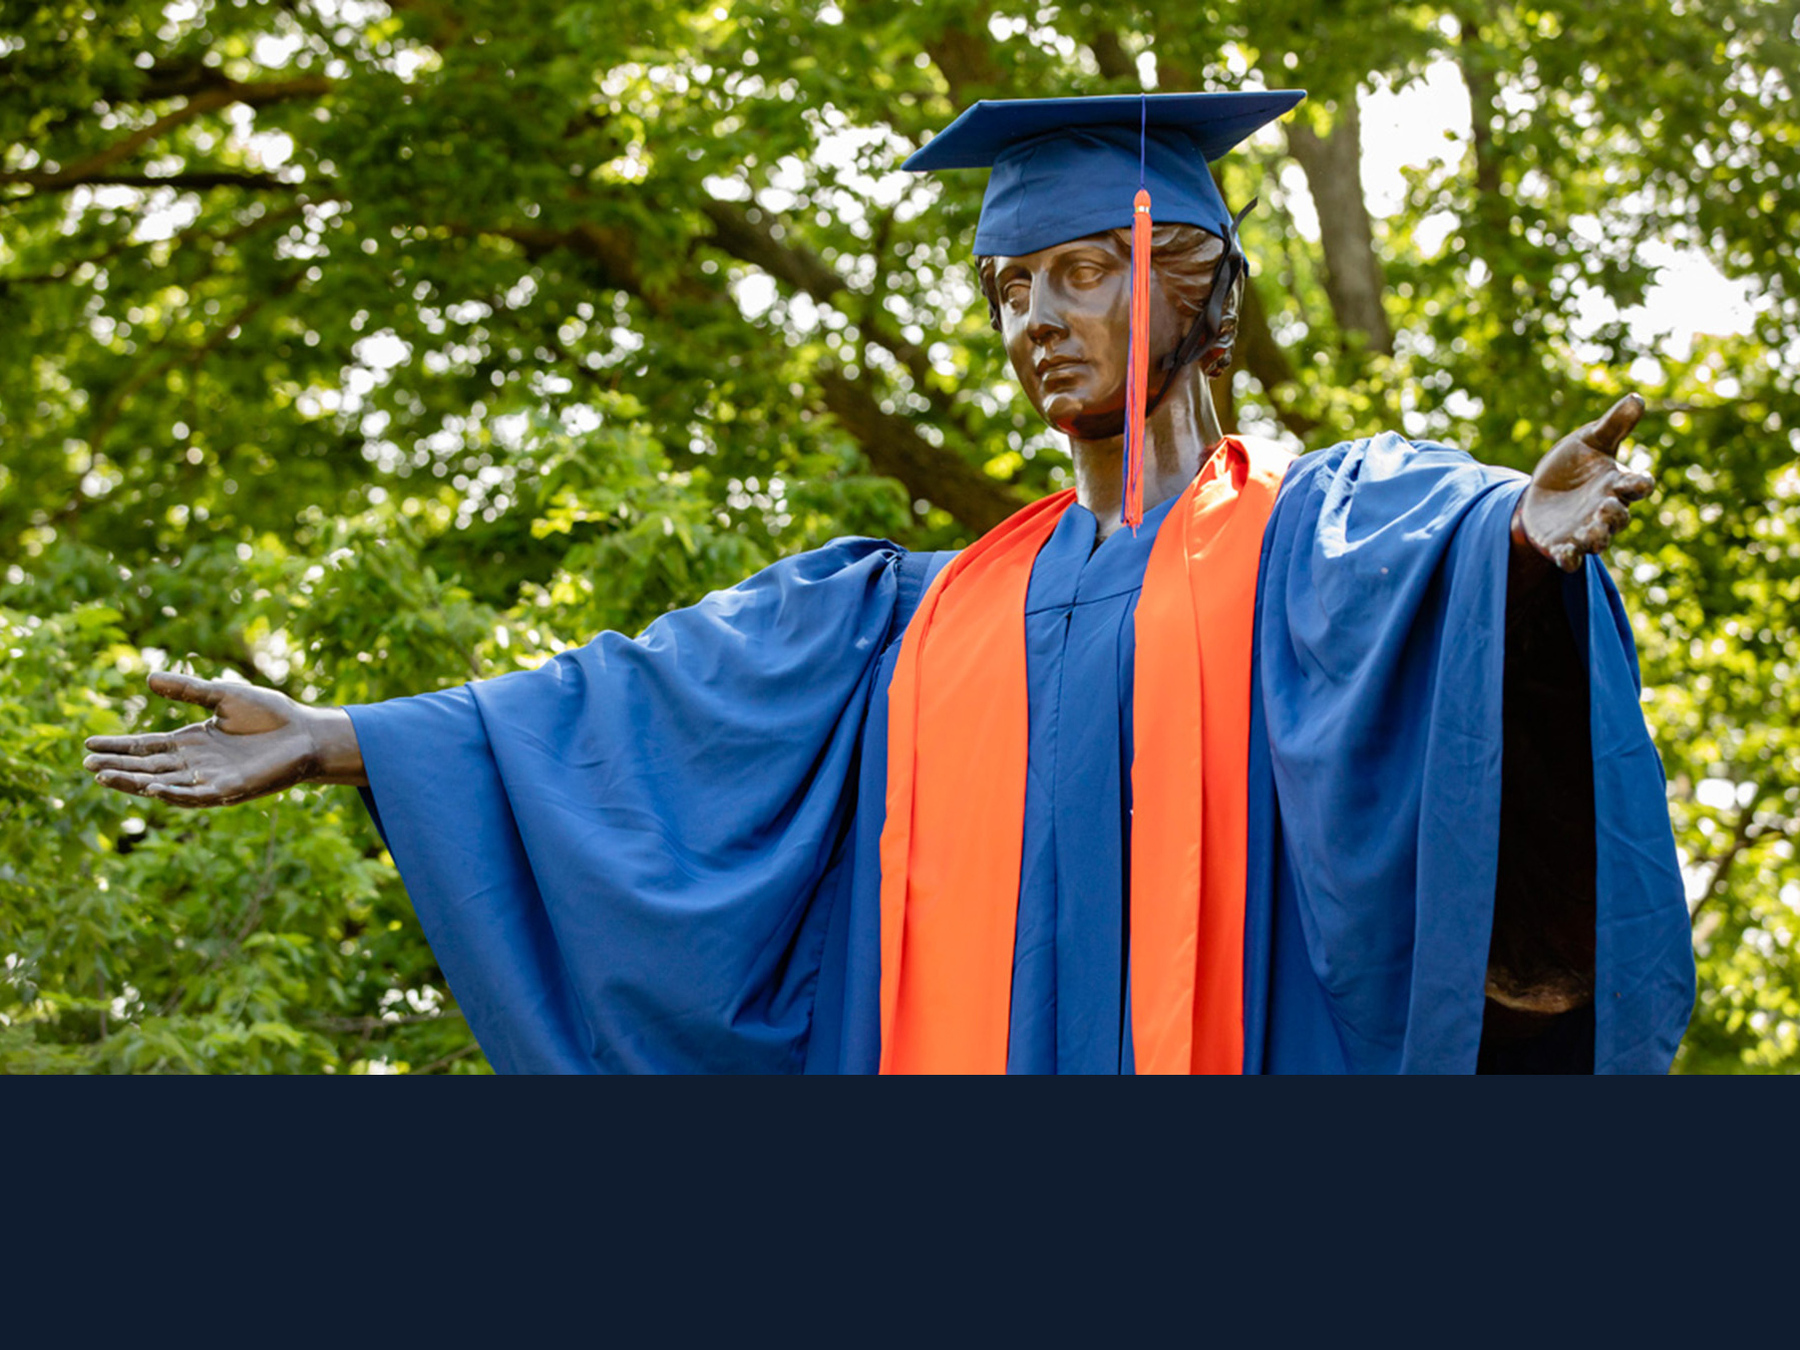 Alma Mater statue dressed in cap and gown